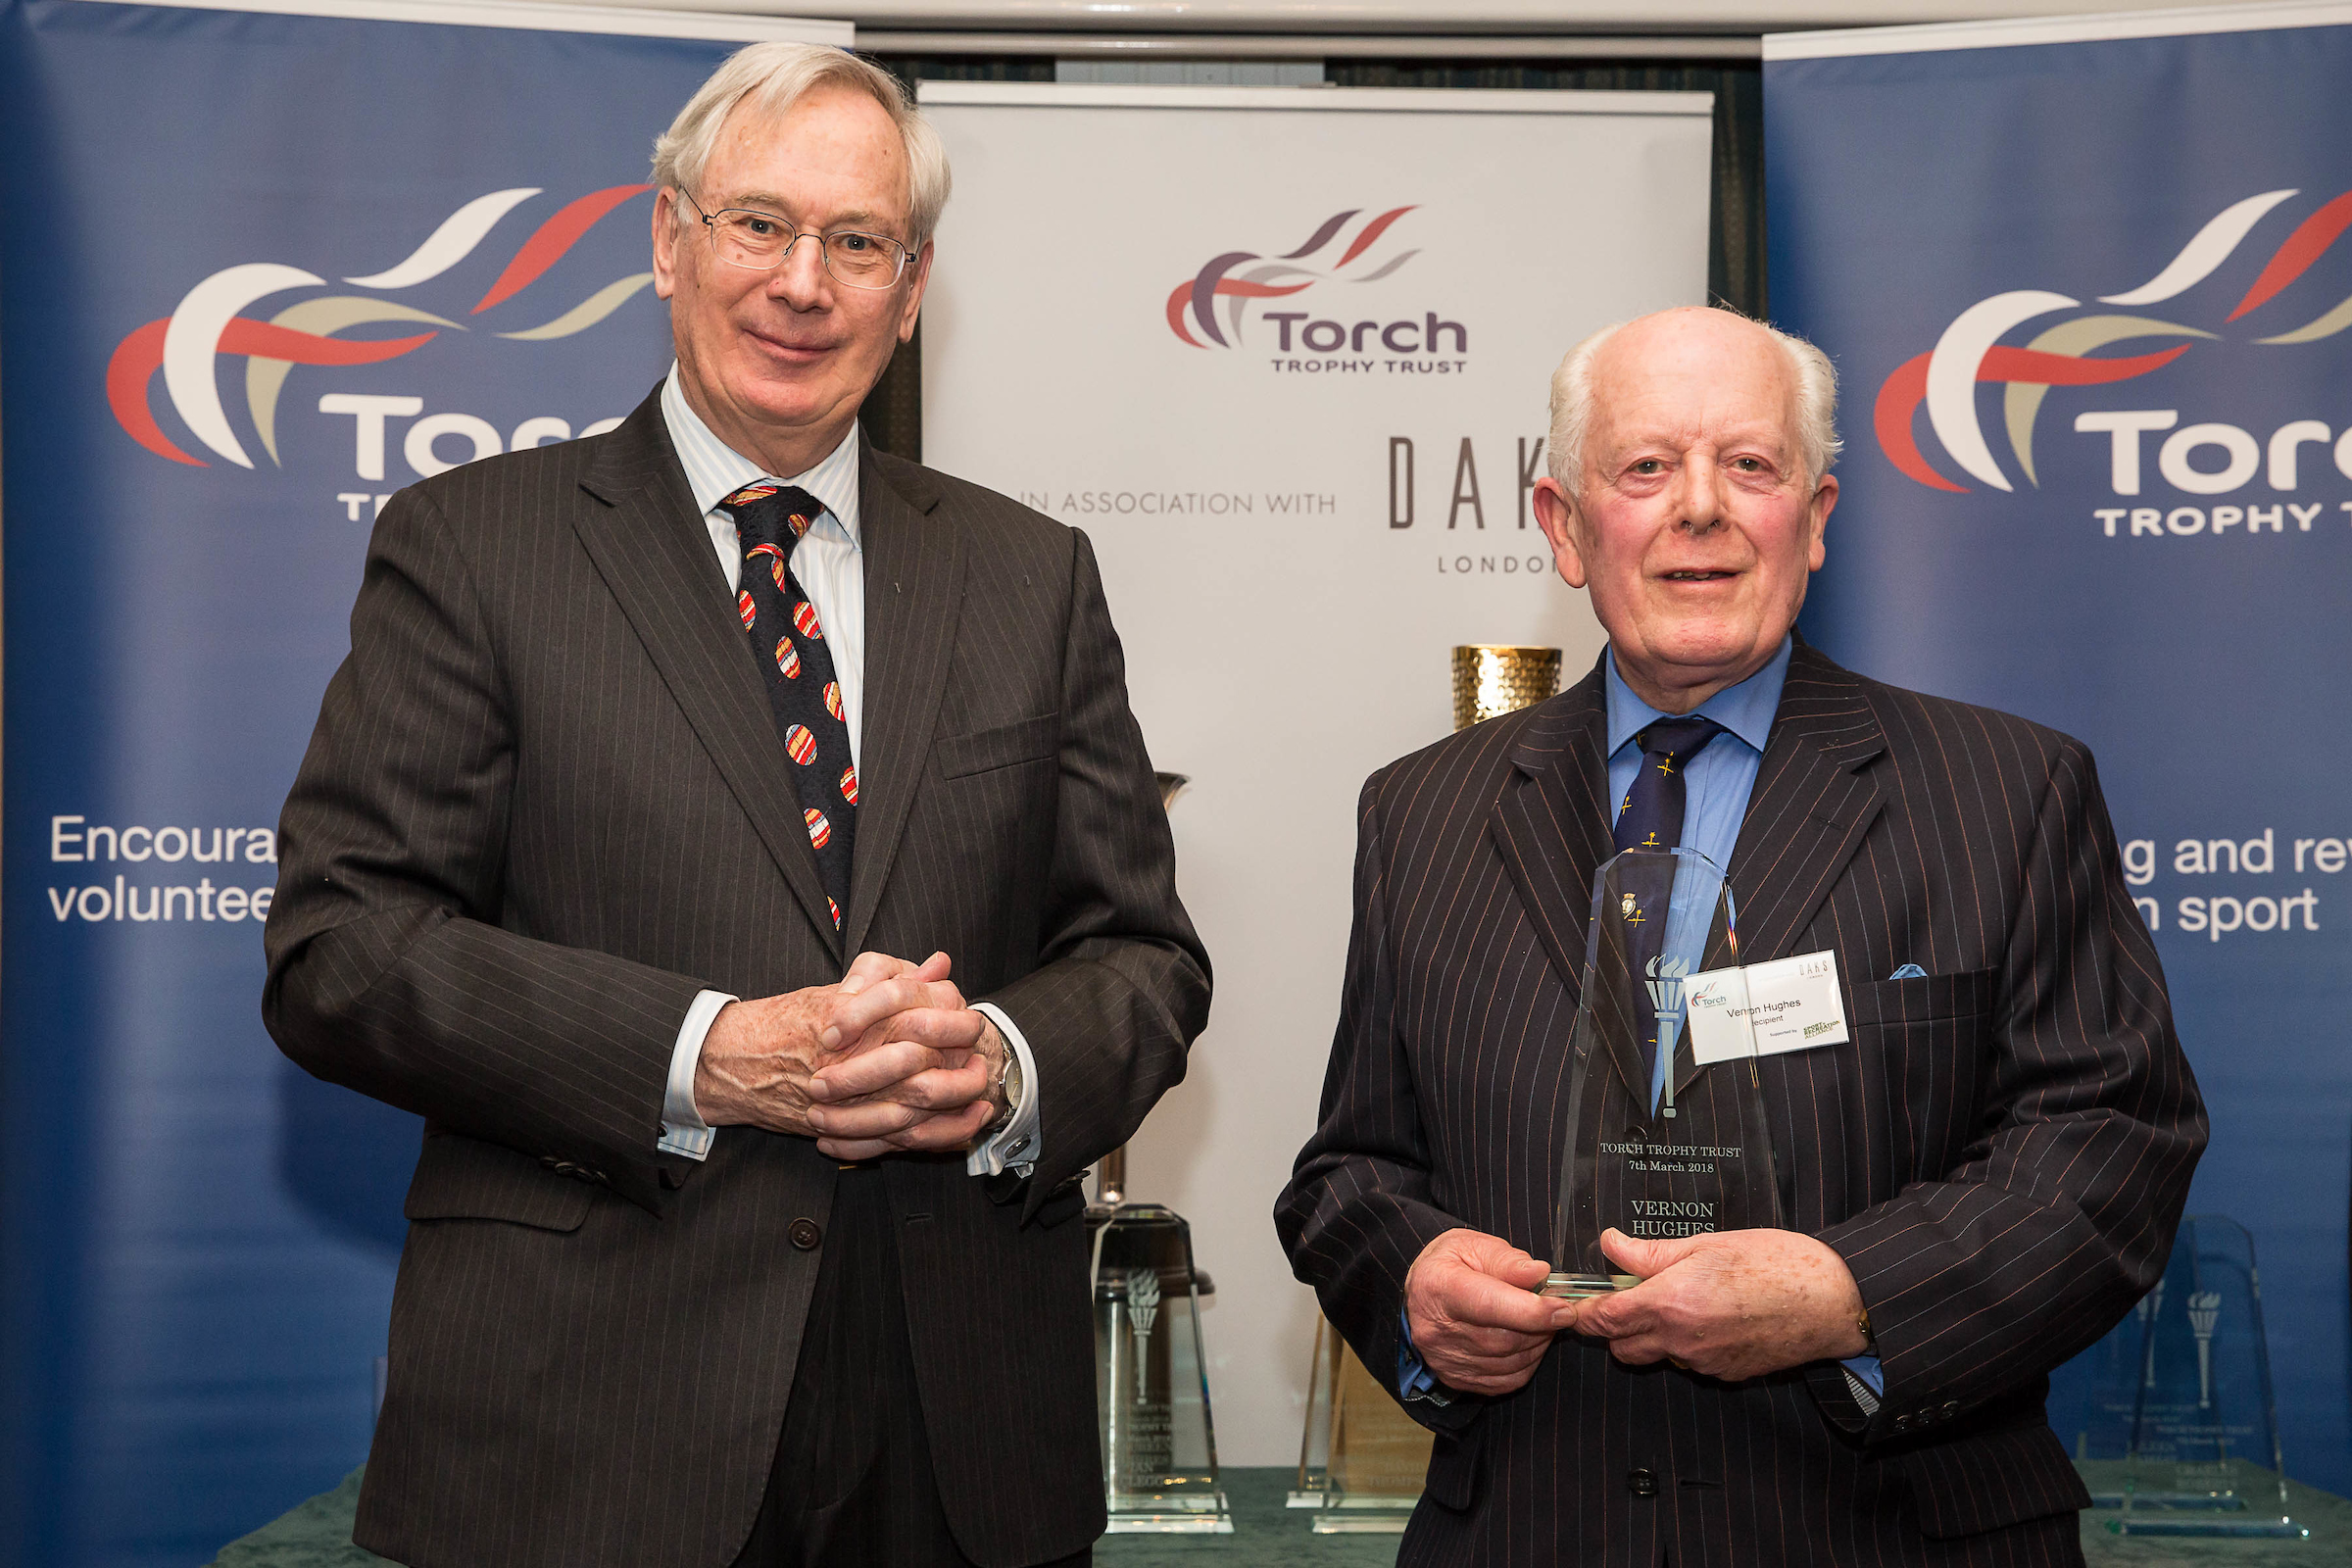 Vernon Hughes receives his 2018 Torch Trophy Trust Awards from HRH The Duke of Gloucester in London